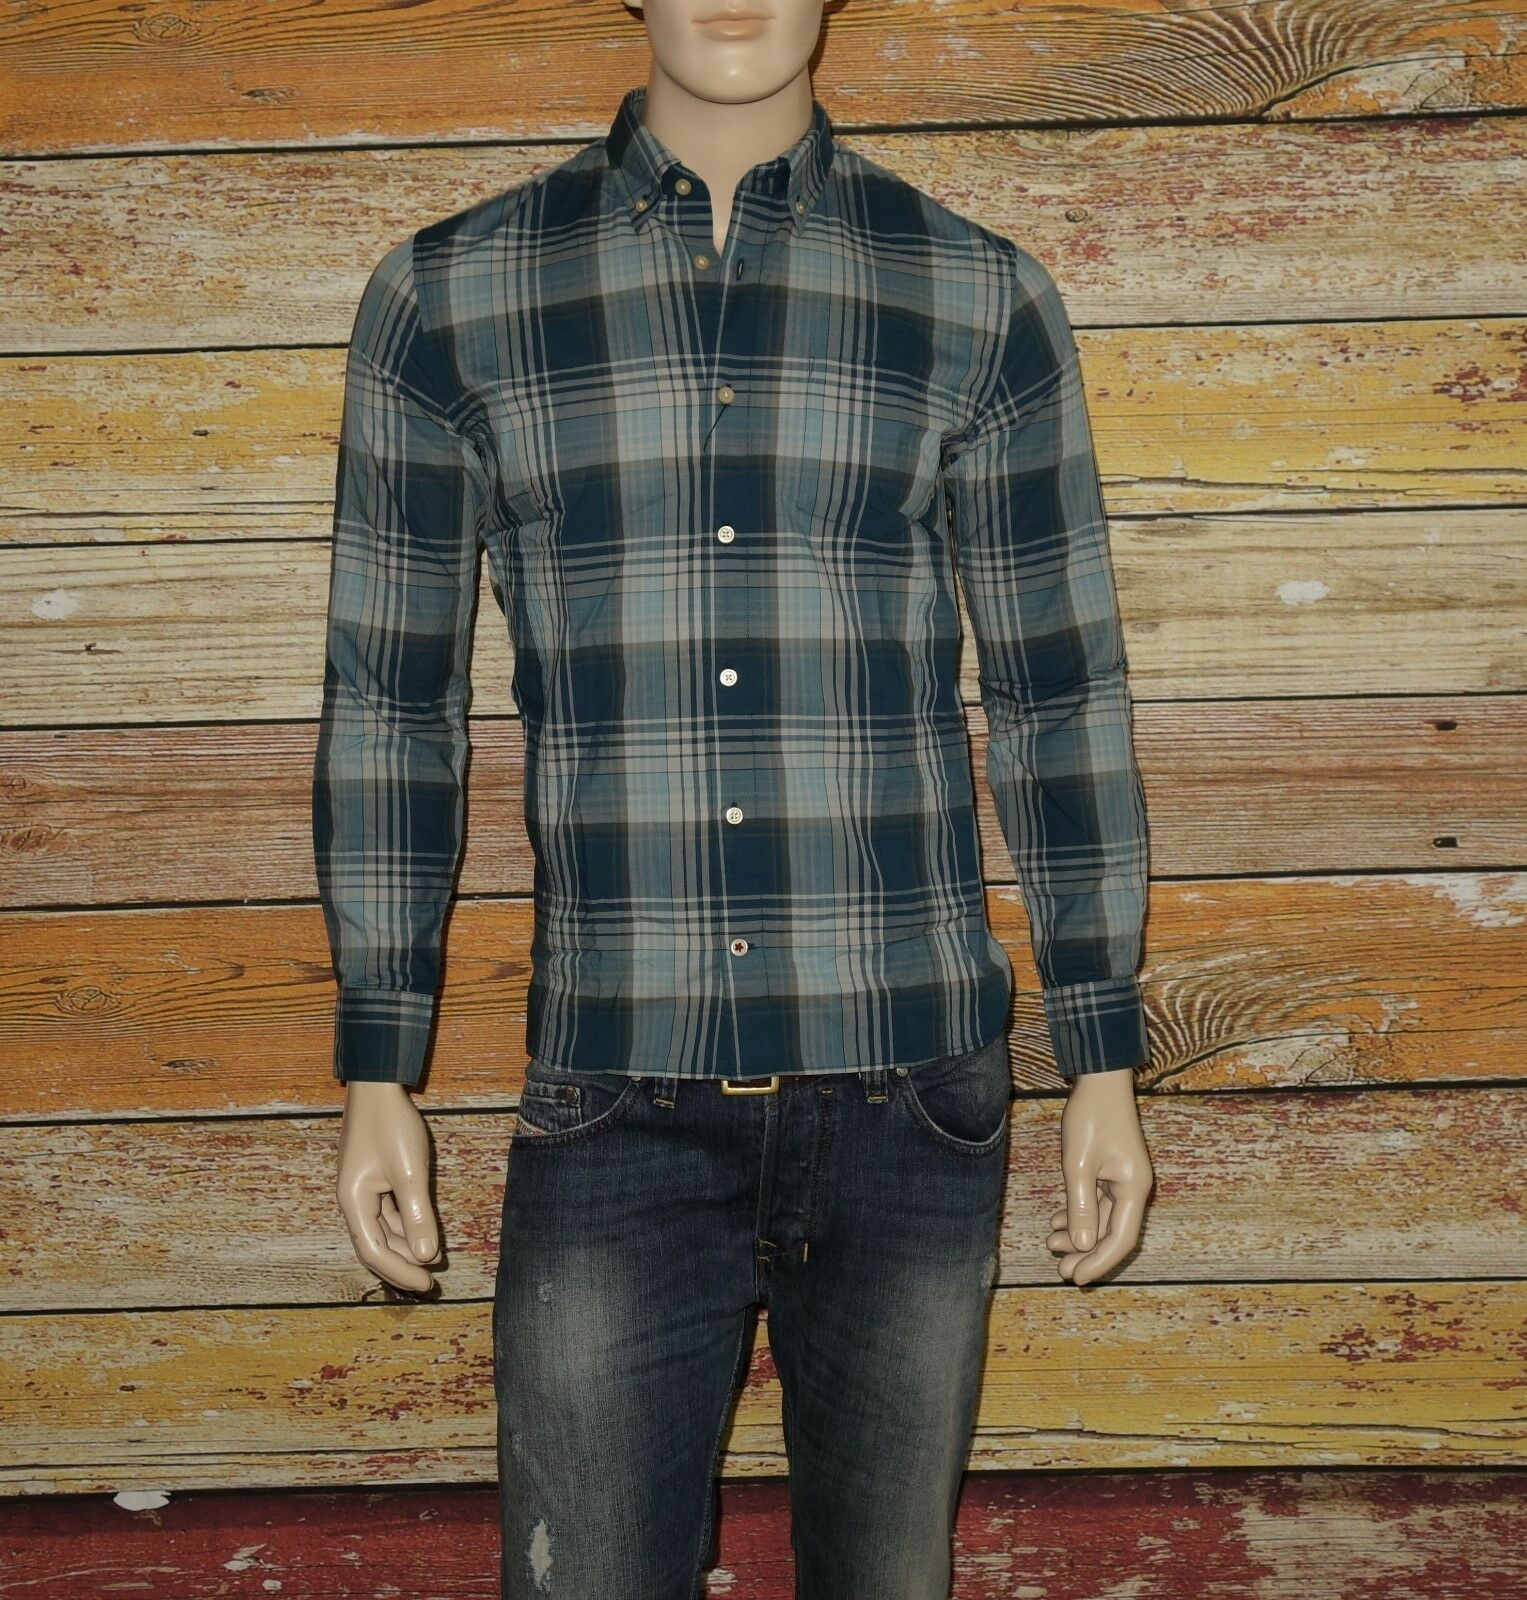 NEW John Varvatos Shirt in Petrol Größe XS 32/33 Long Sleeves was 148.00